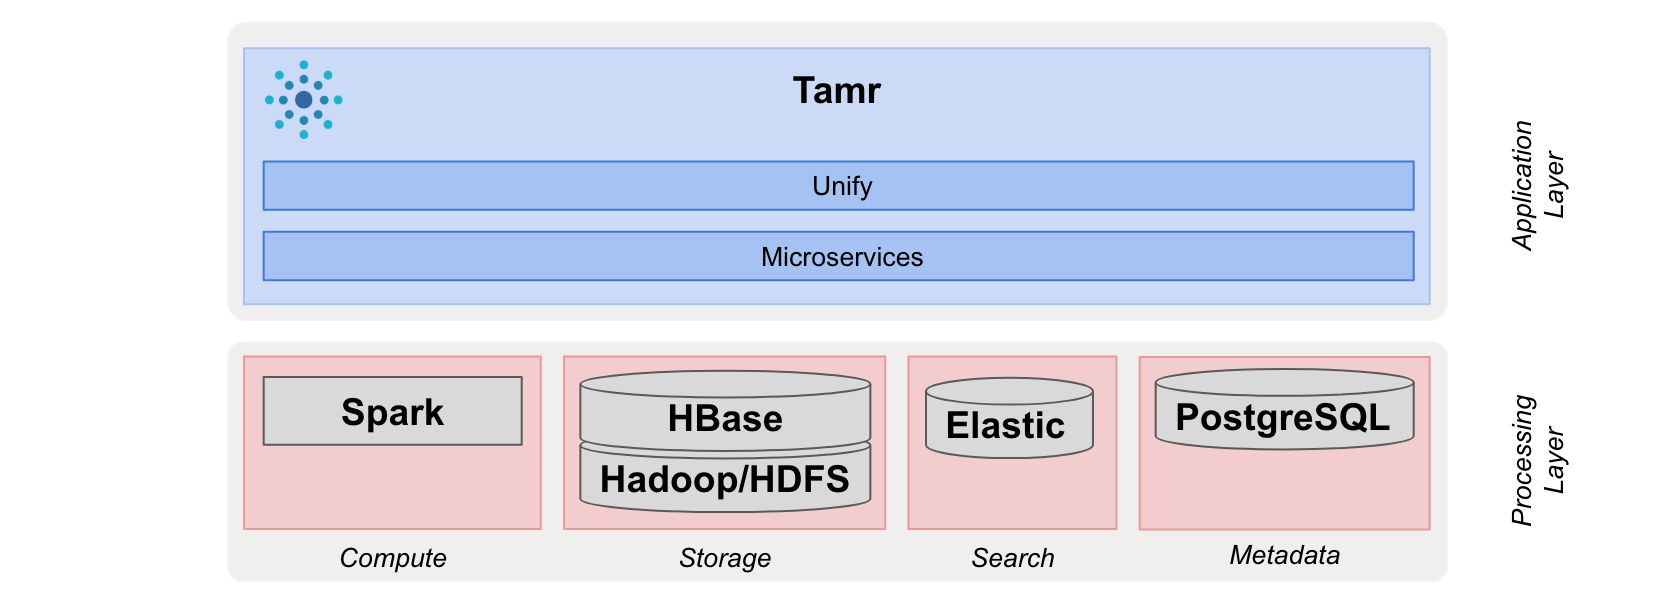 Tamr Unify (top) and processing (bottom) layers.